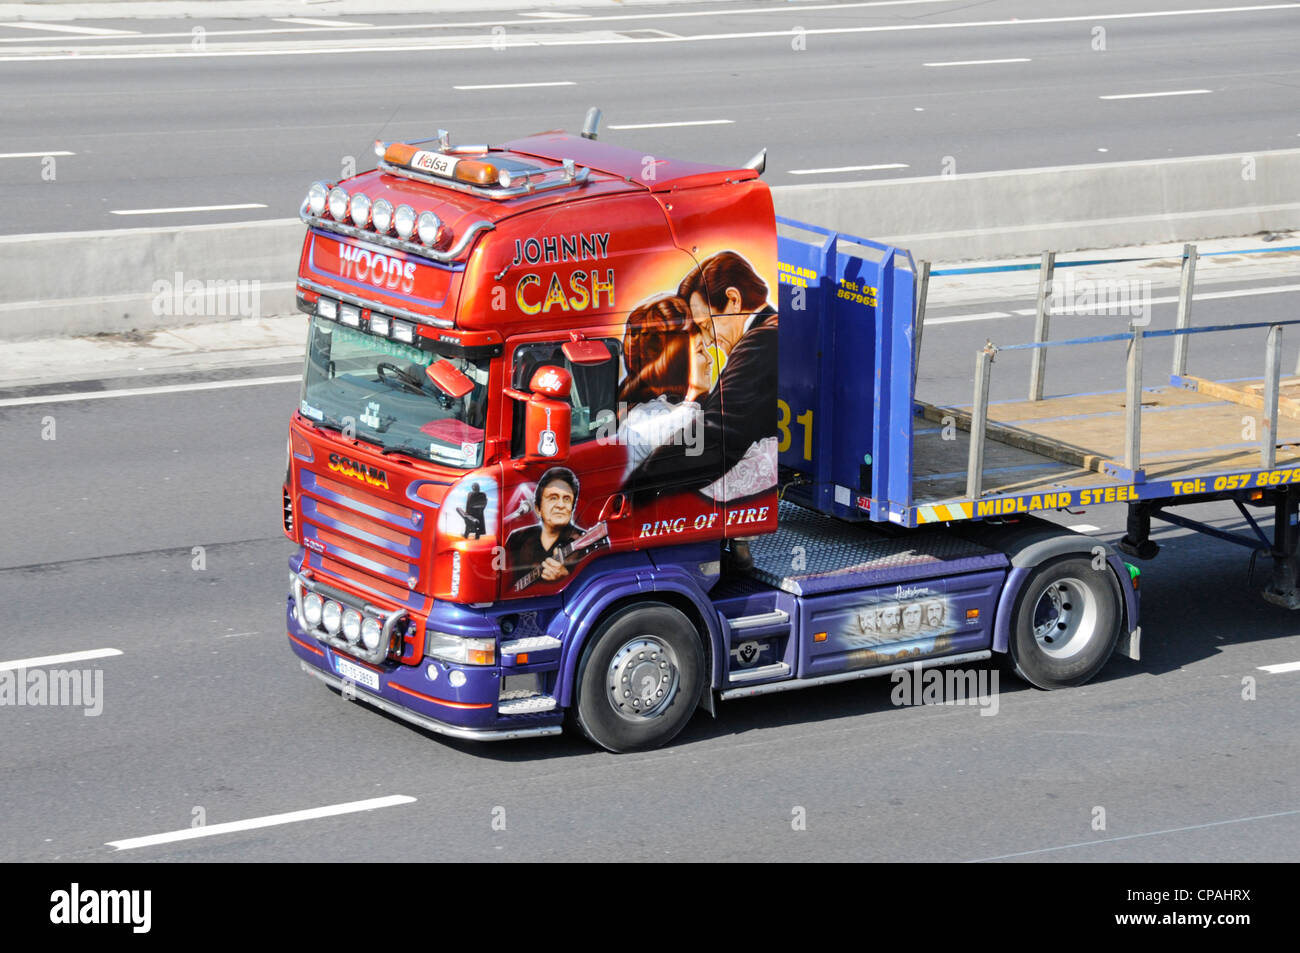 Scania truck with colourful Johnny Cash graphics on side of cab driving along UK motorway - Stock Image